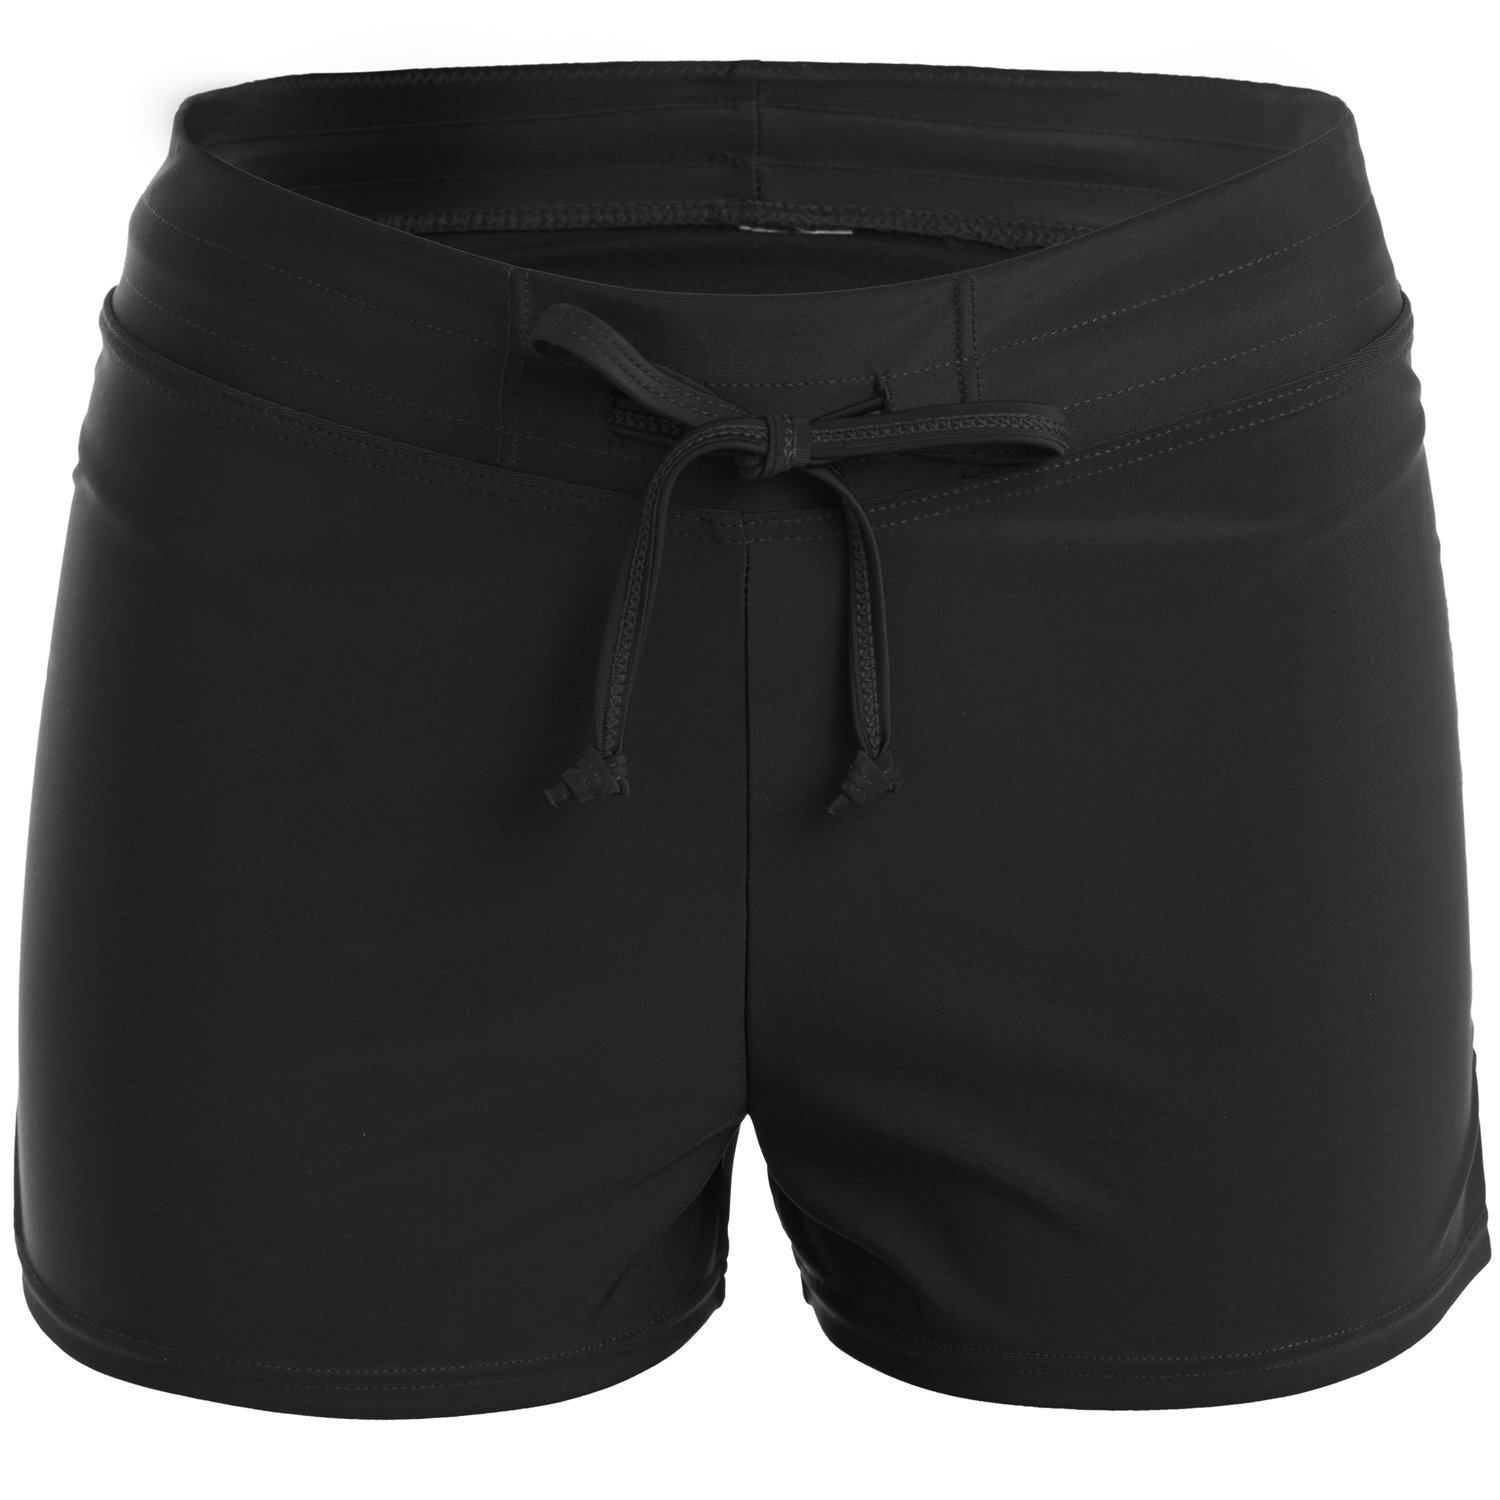 Vegatos Womens Solid Boardshorts Swimming Shorts Swim Bottoms Surfing Boyshorts Black